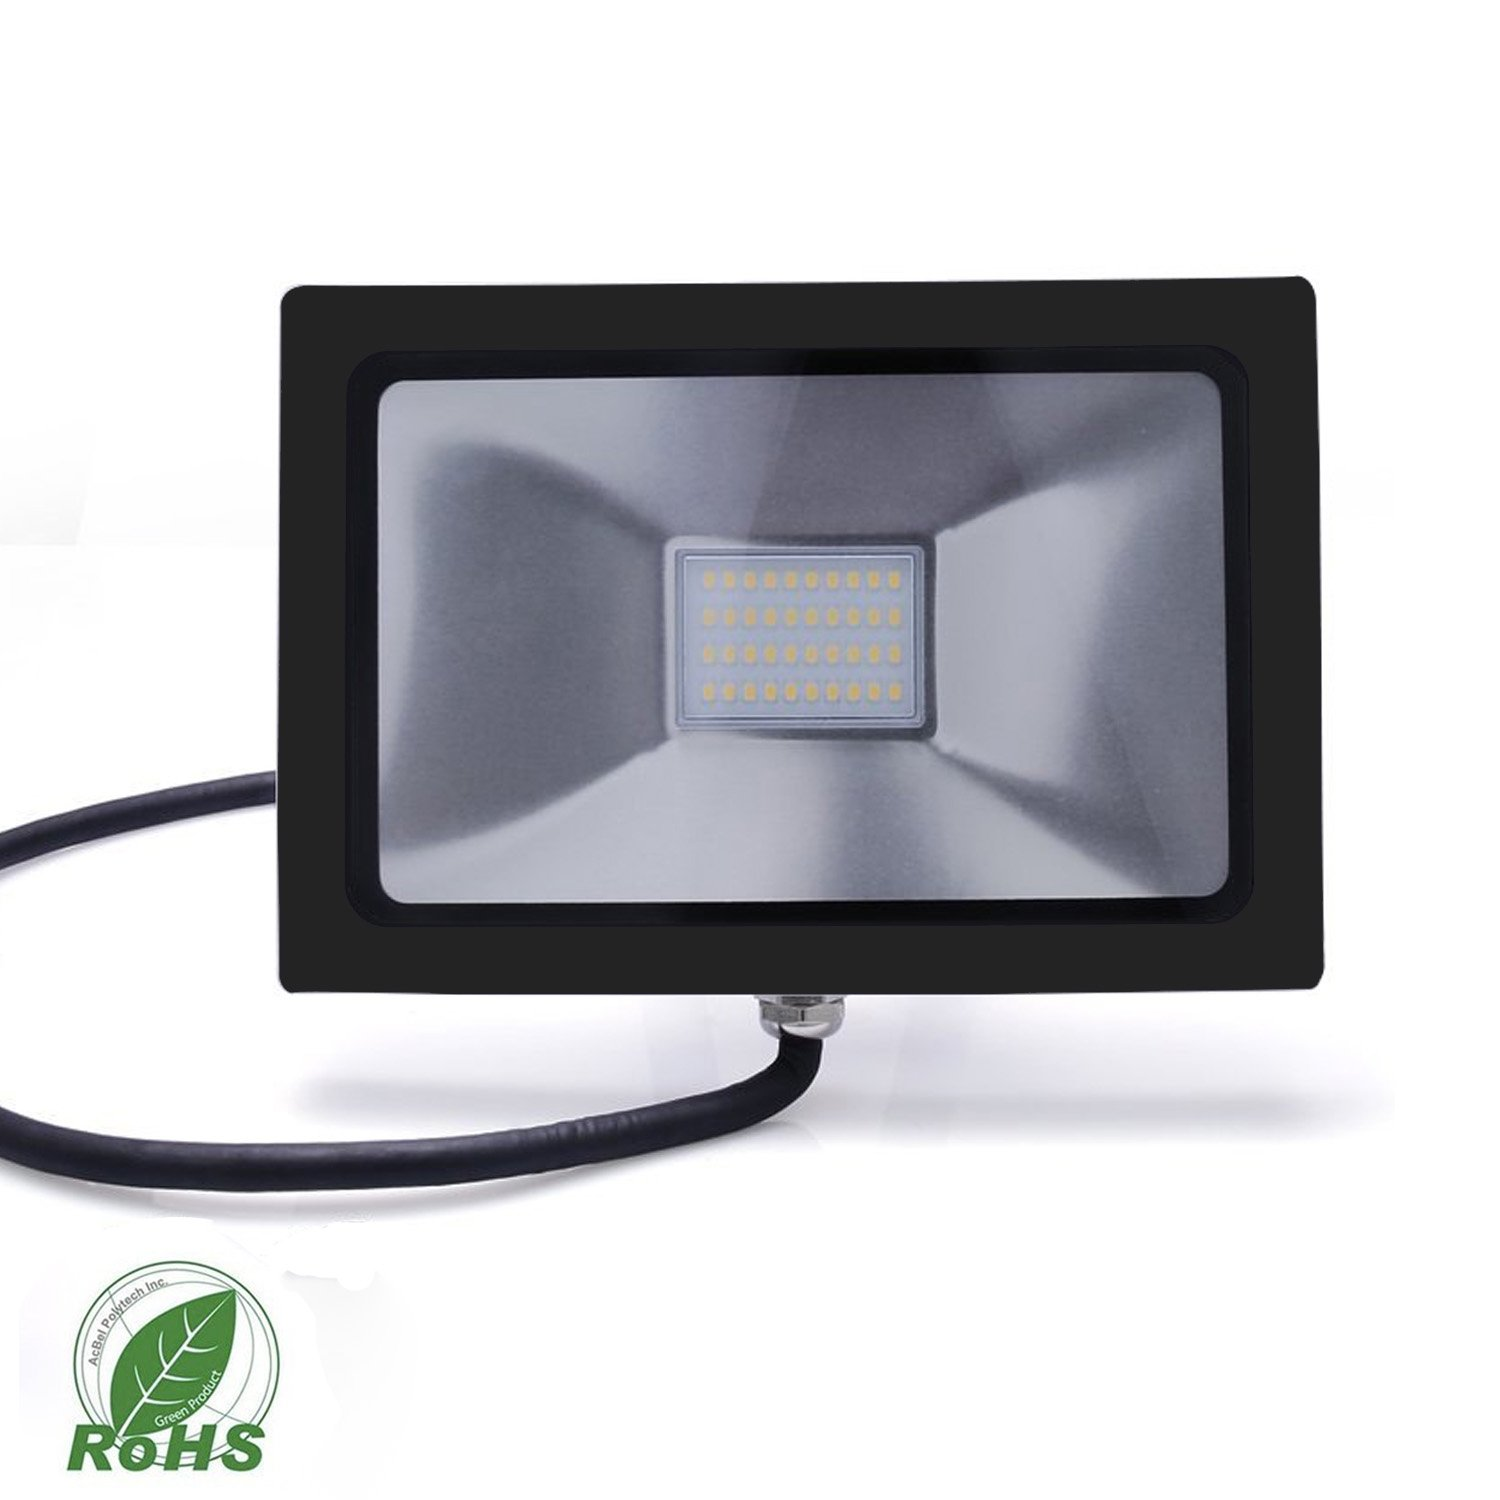 Light Blue™ 50W High Power Outdoor LED Flood Lights, Sleek, Slim design, (150W HPS Bulb Replacement) 5000K Daylight, 4715 Lumens, Waterproof and Outdoor Rated, UL-Listed by Light Blue USA